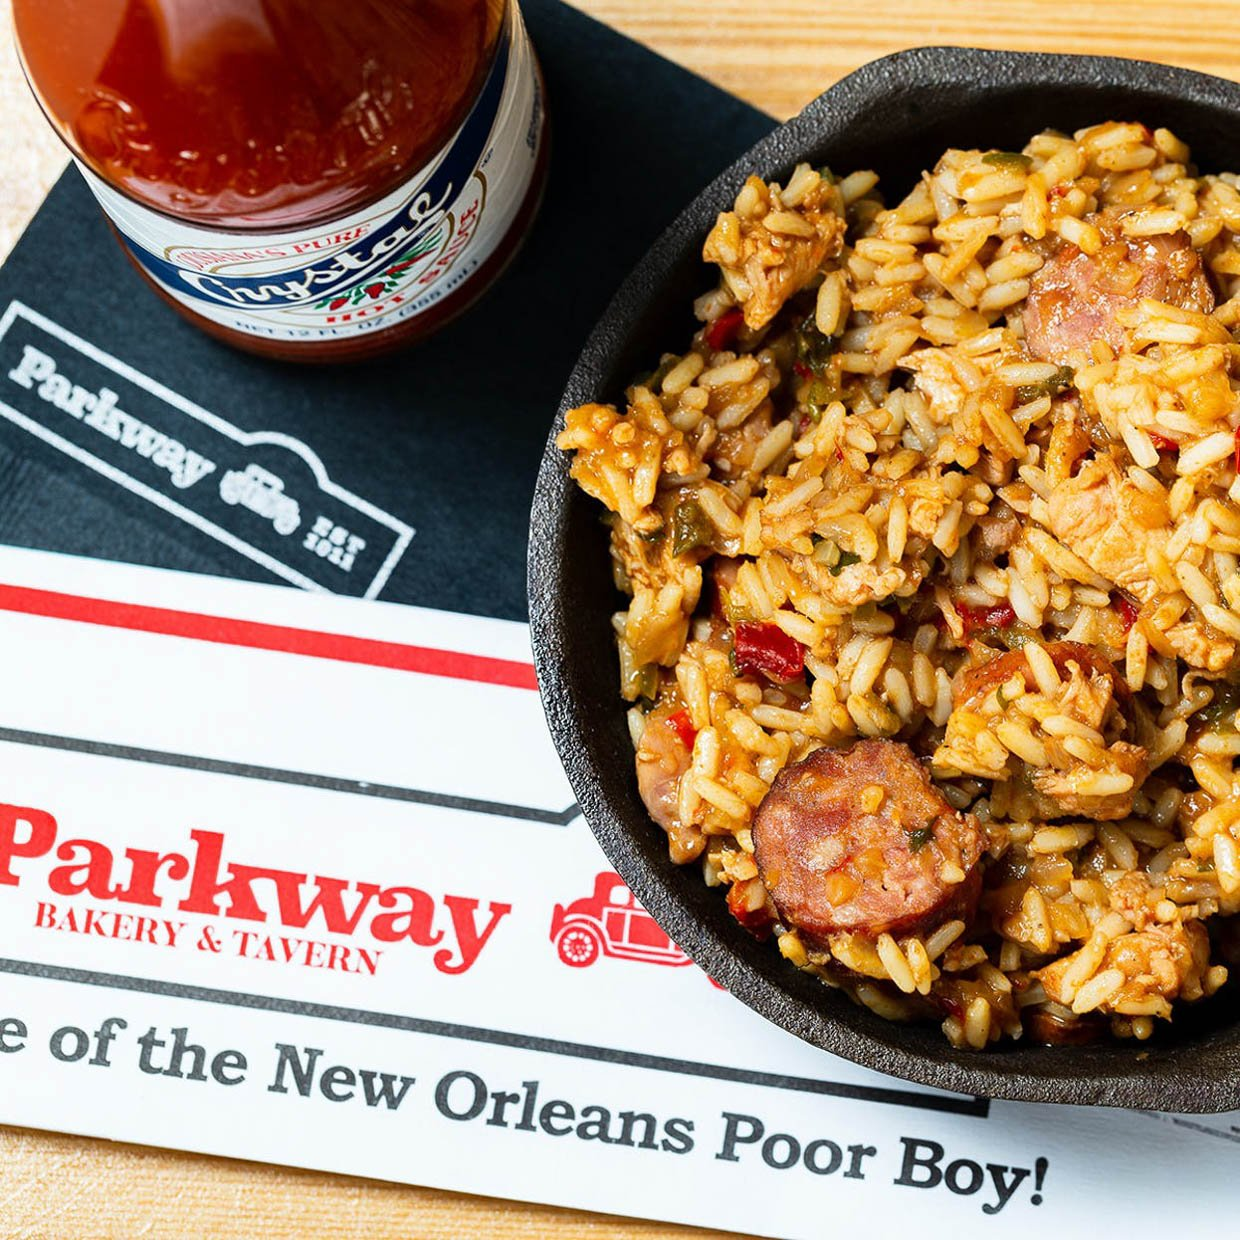 Parkway Po' Boys at Home